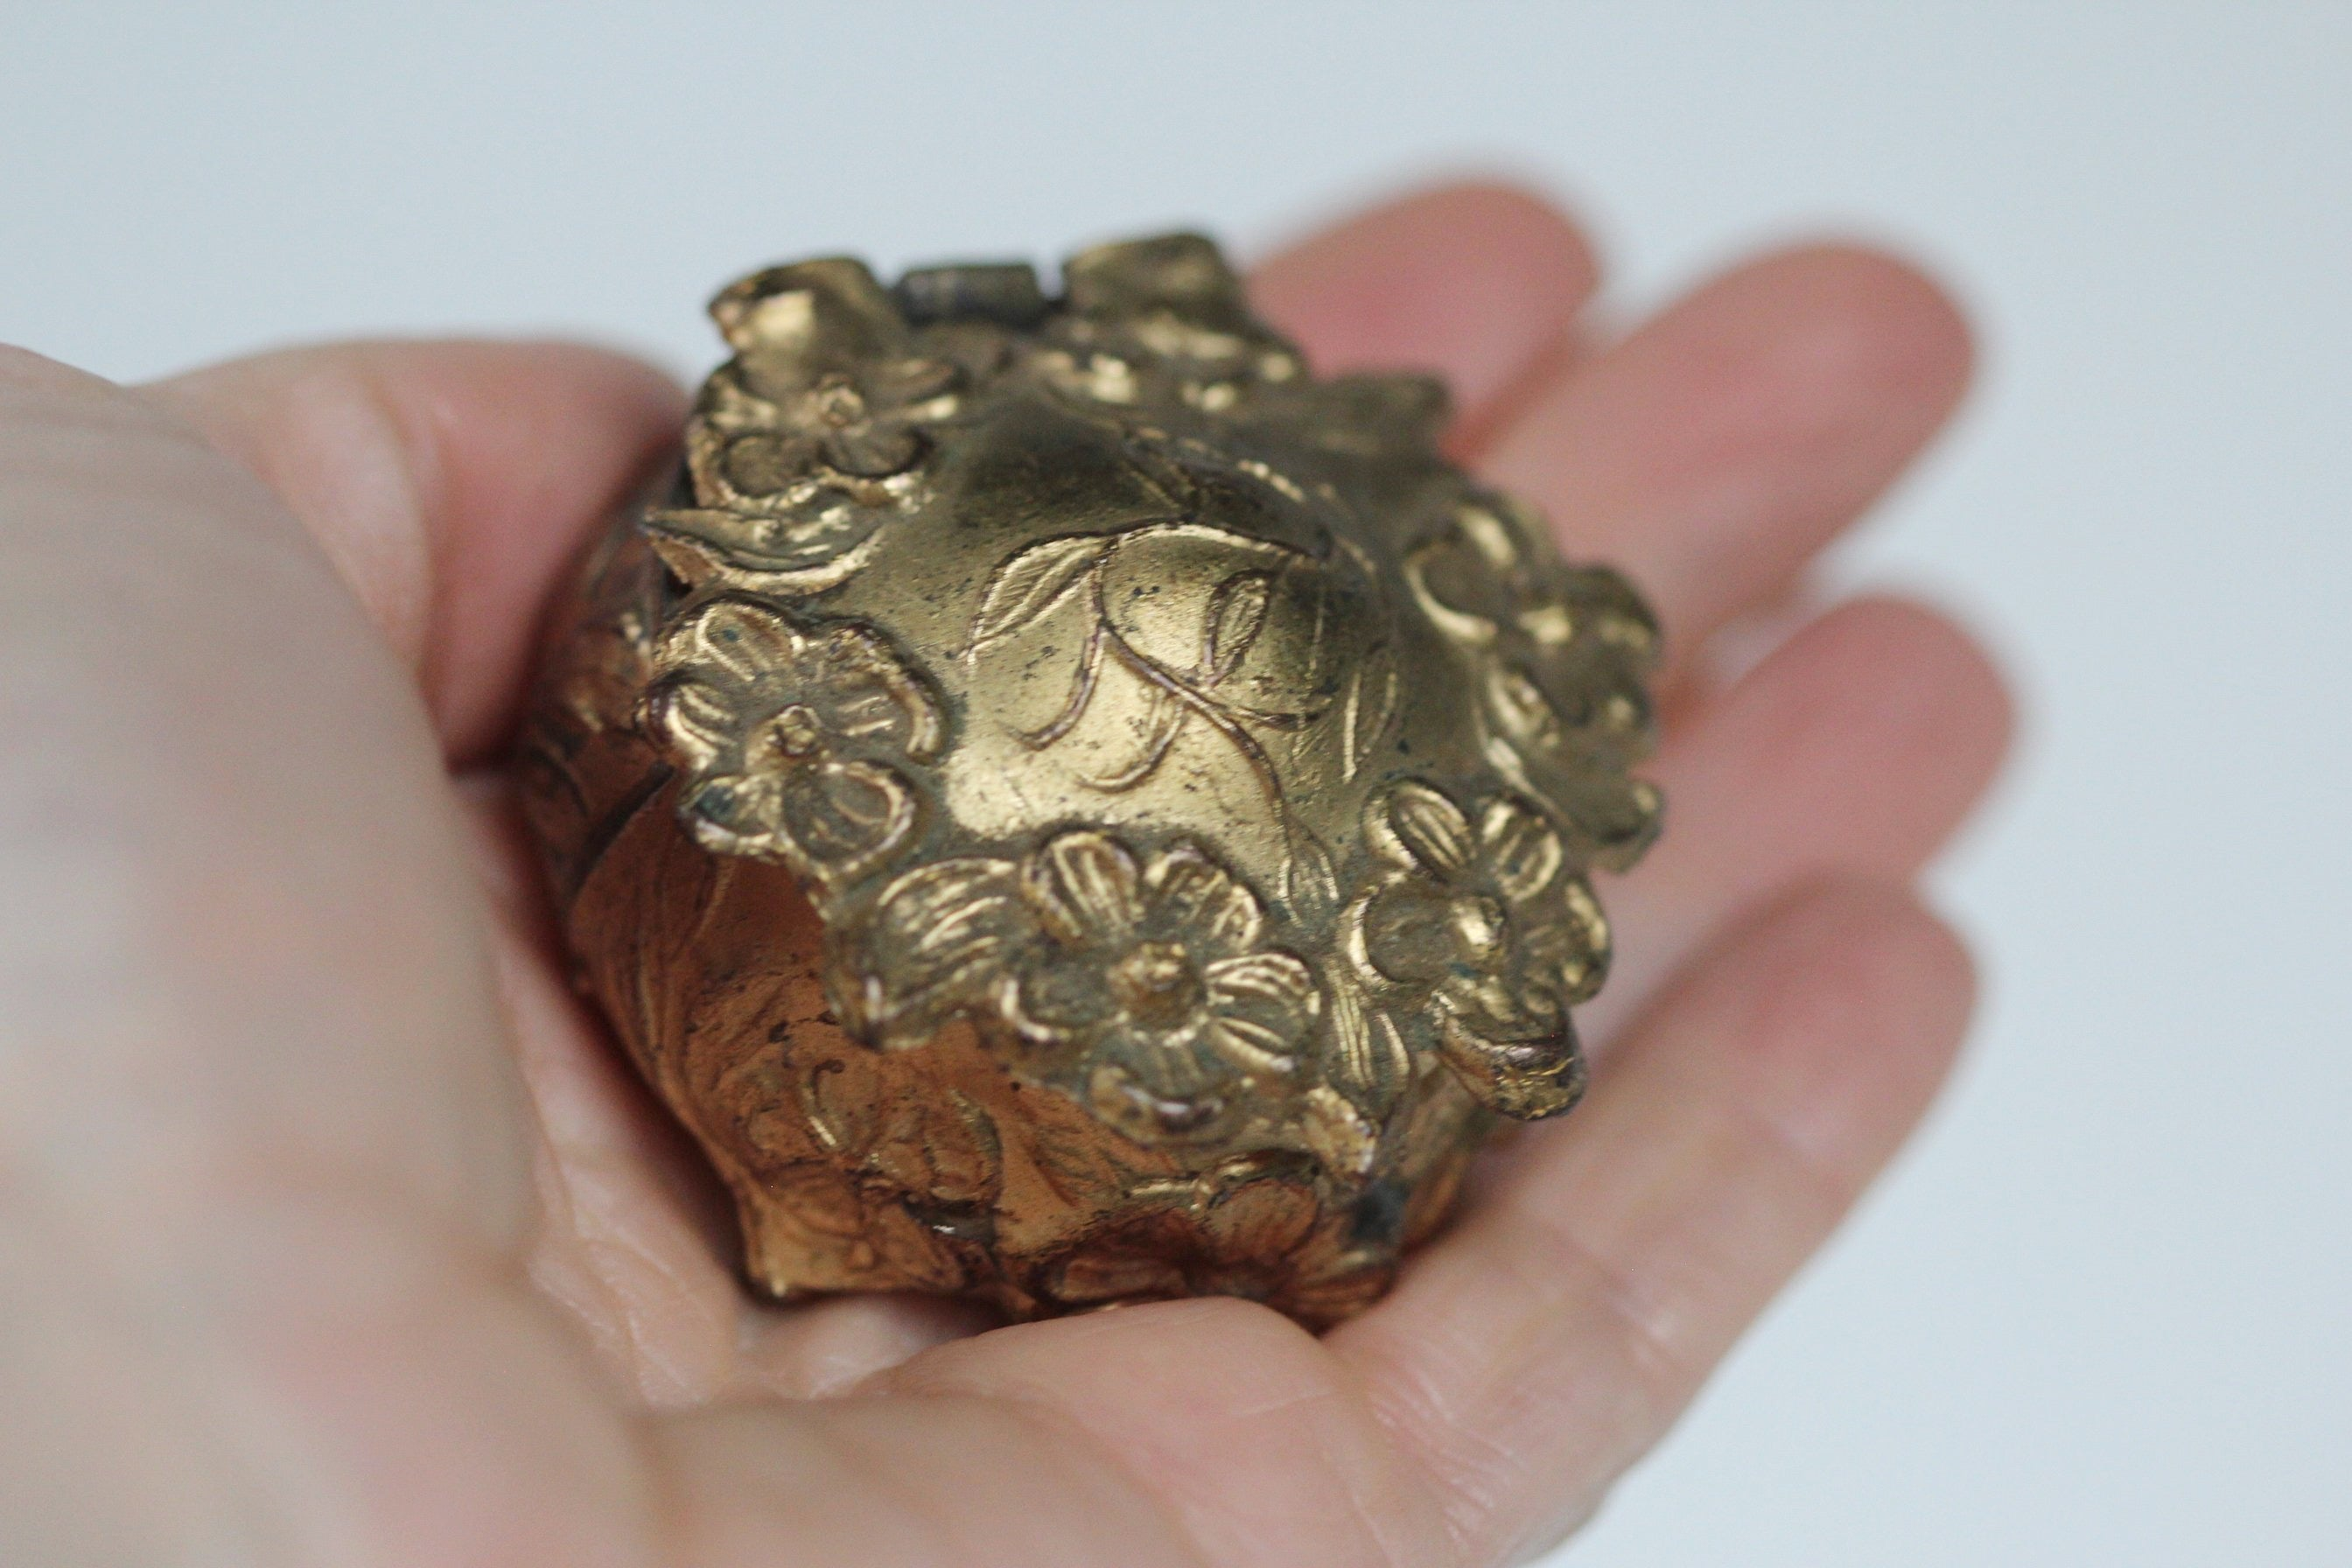 Antique Miniature Art Nouveau Jewelry / Ring Box